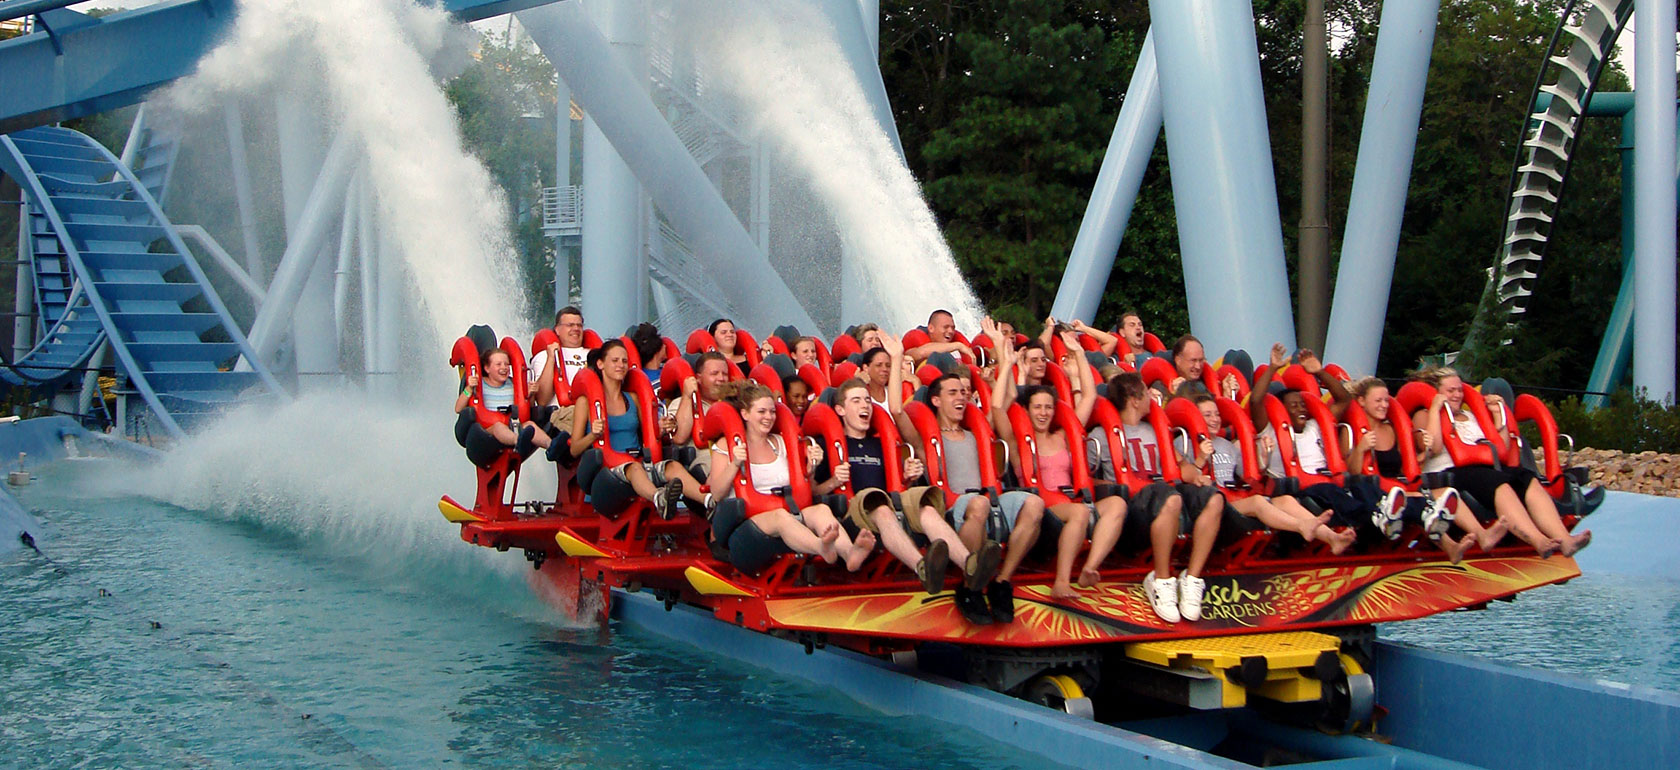 One day trip to PortAventura from Barcelona (BCNPORTA)